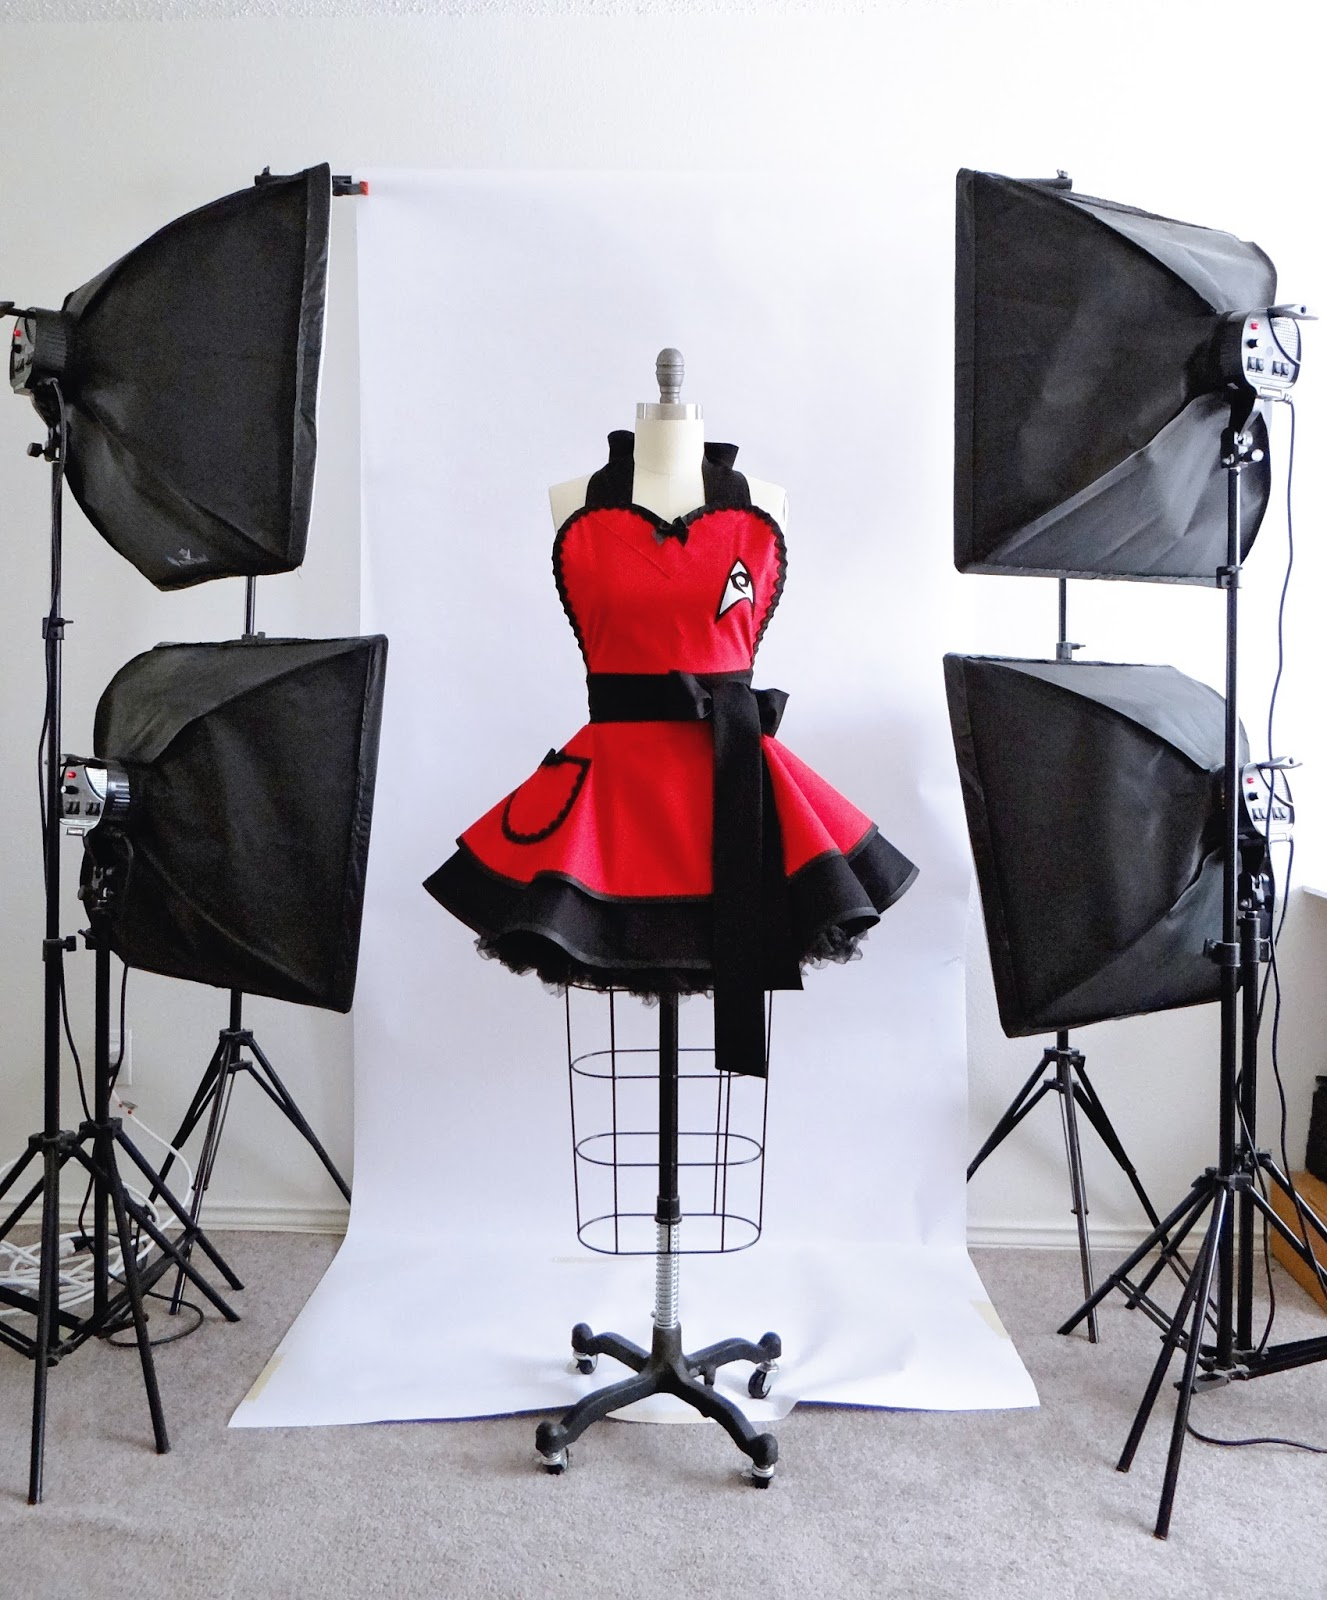 Step Up Your Product Photography Game with Tips from Bambino Amore - The Apron Makers